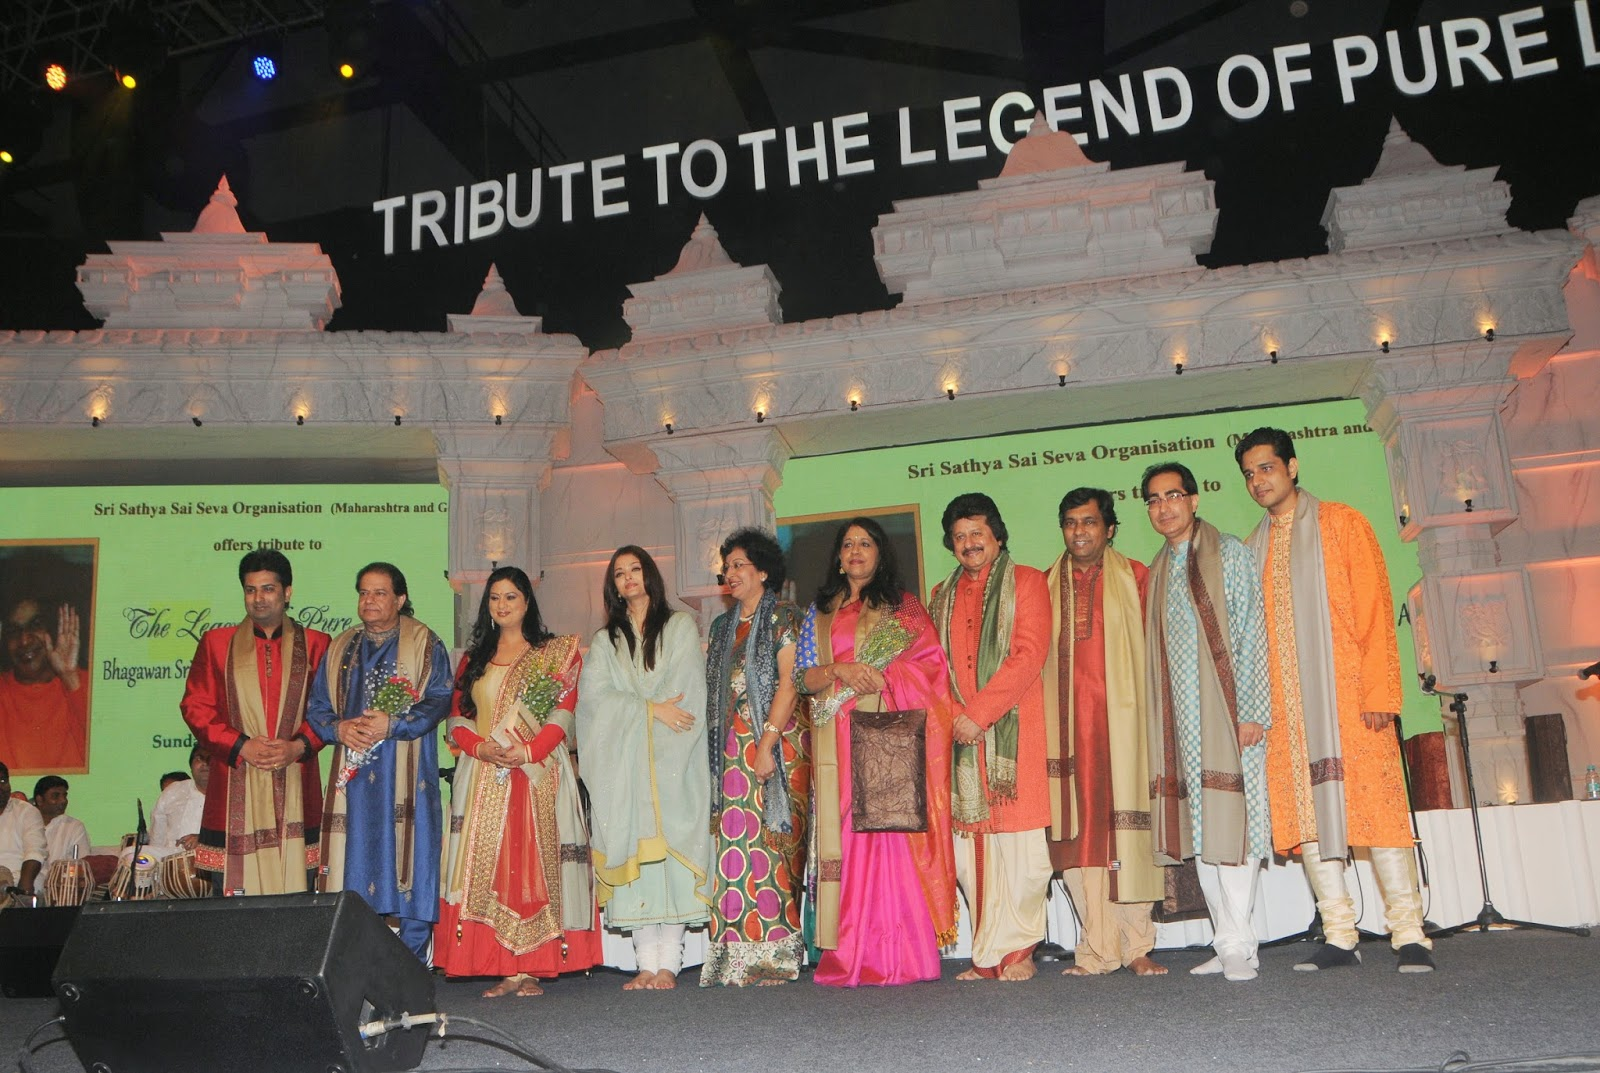 tribute_to_the_legend_of_pure_love_27_april_2014.htm